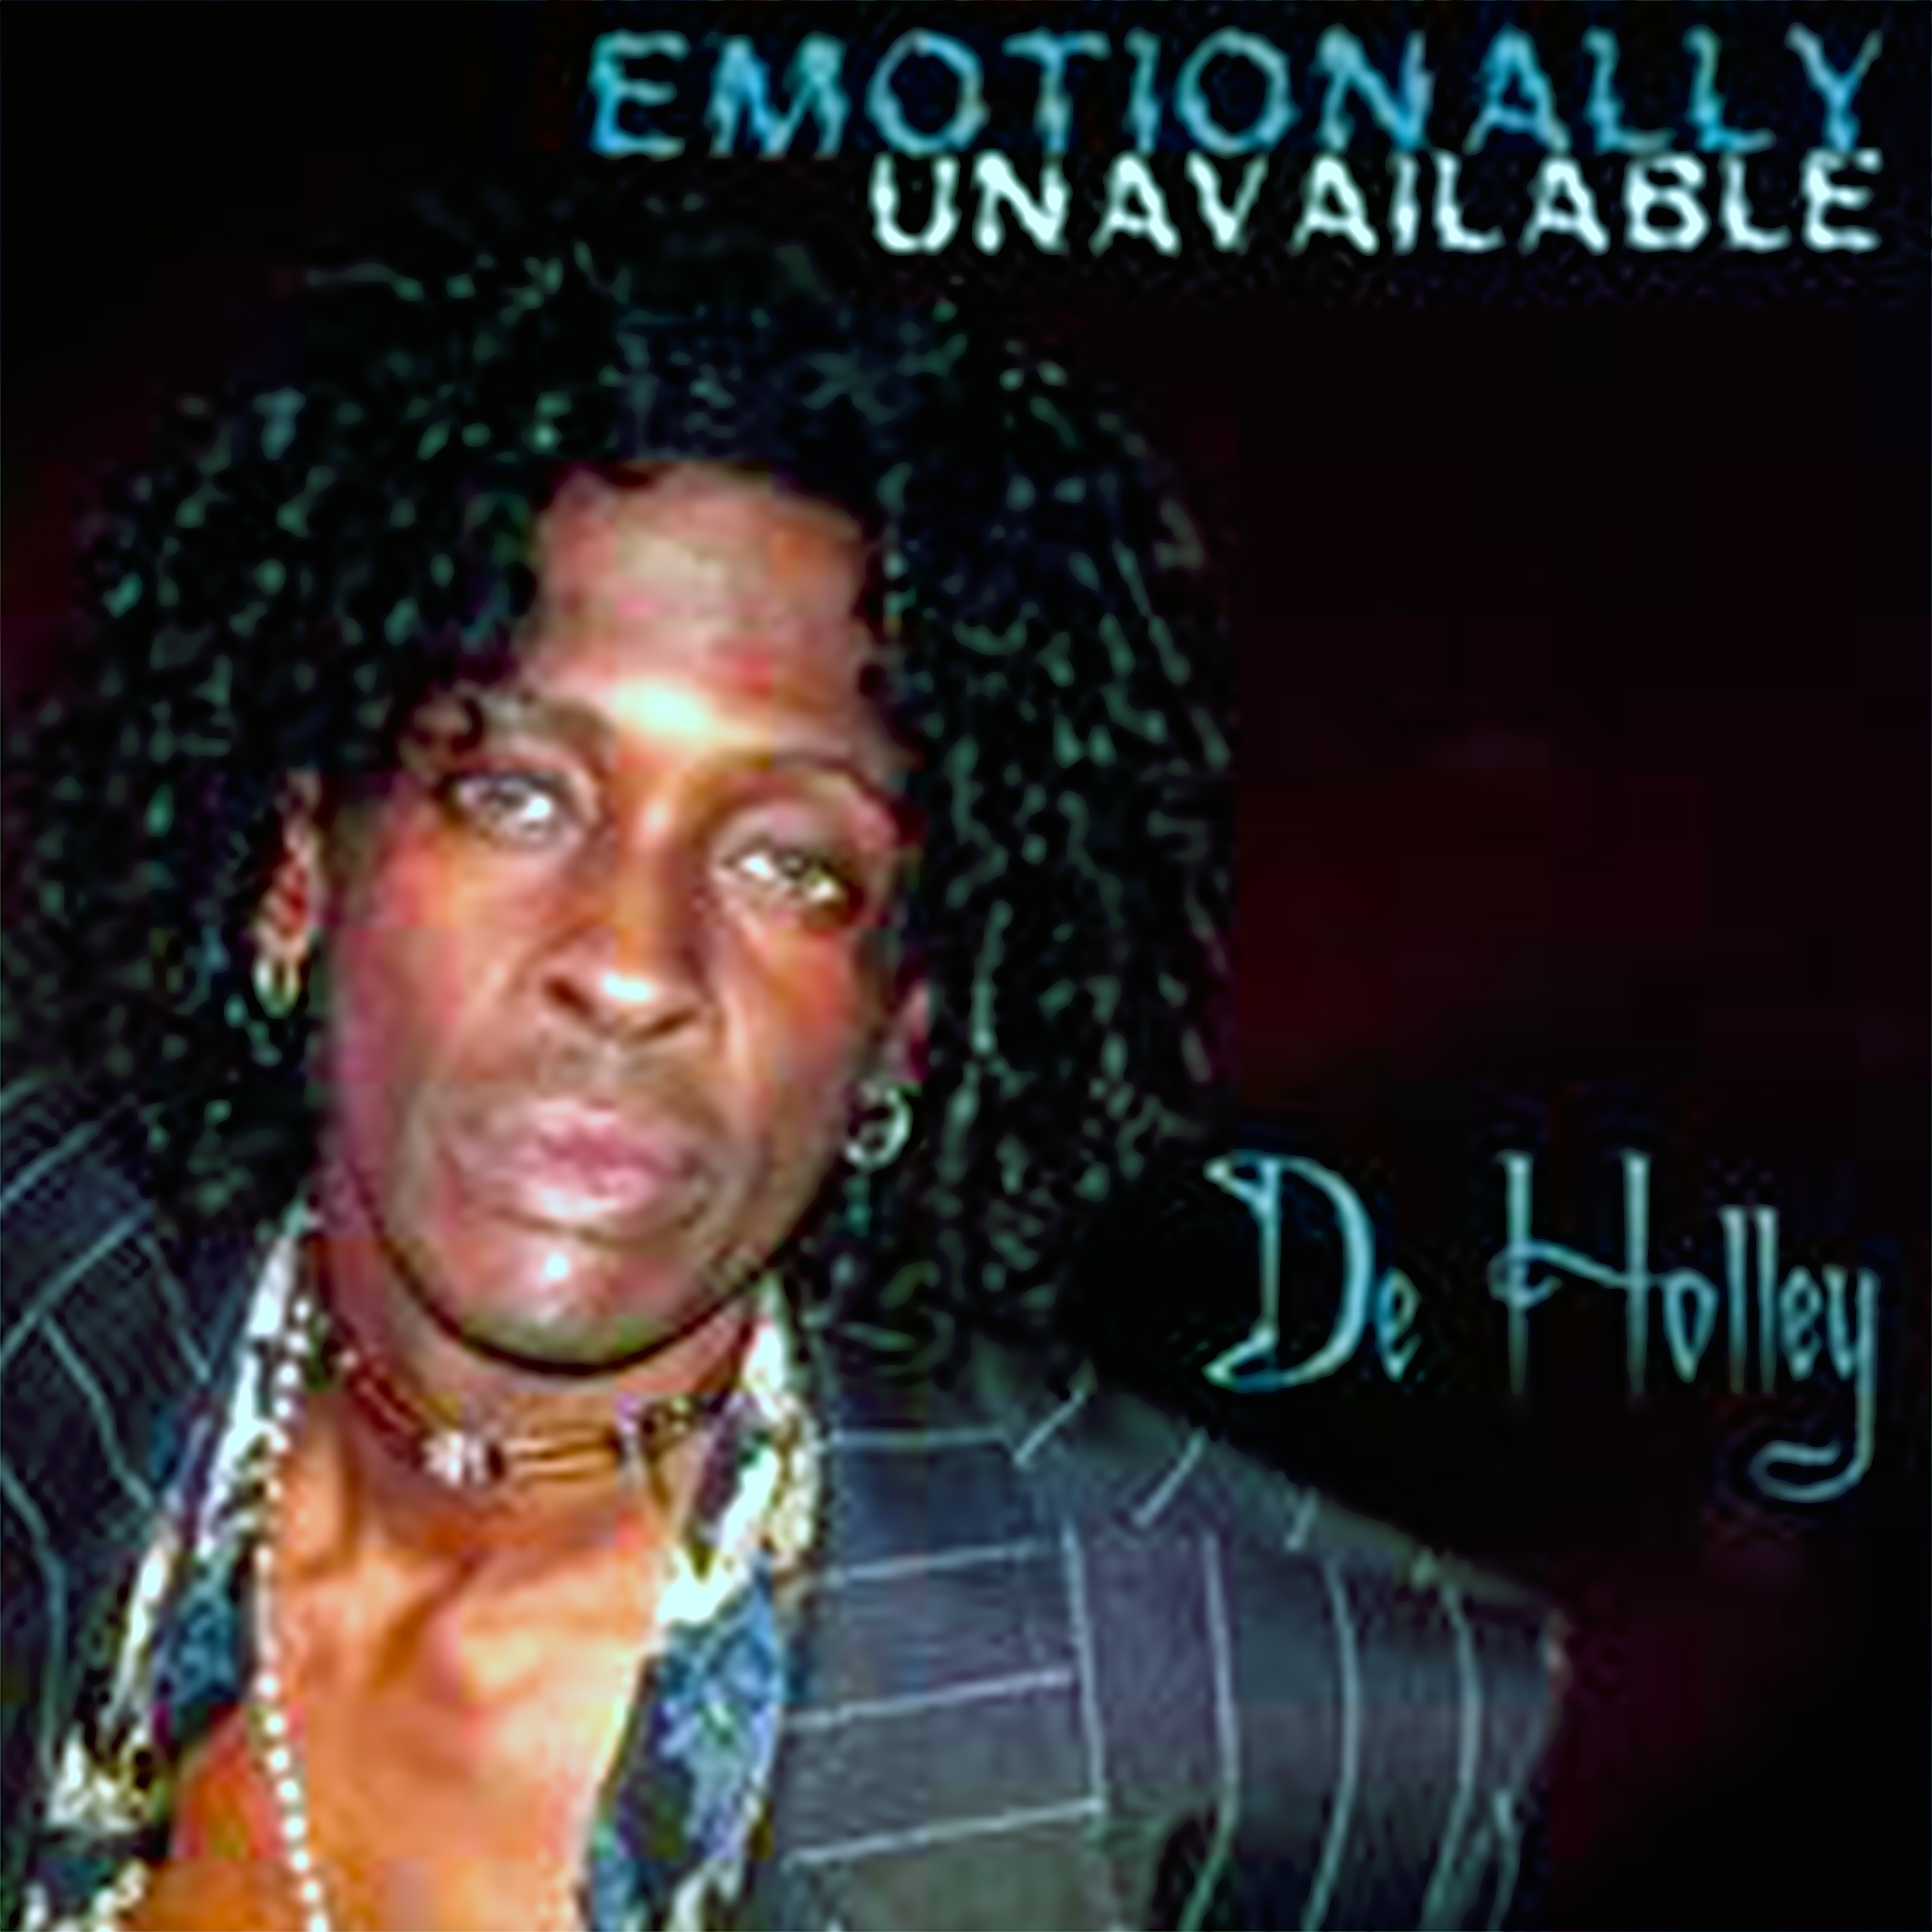 Emotionally Unavailable De Holley